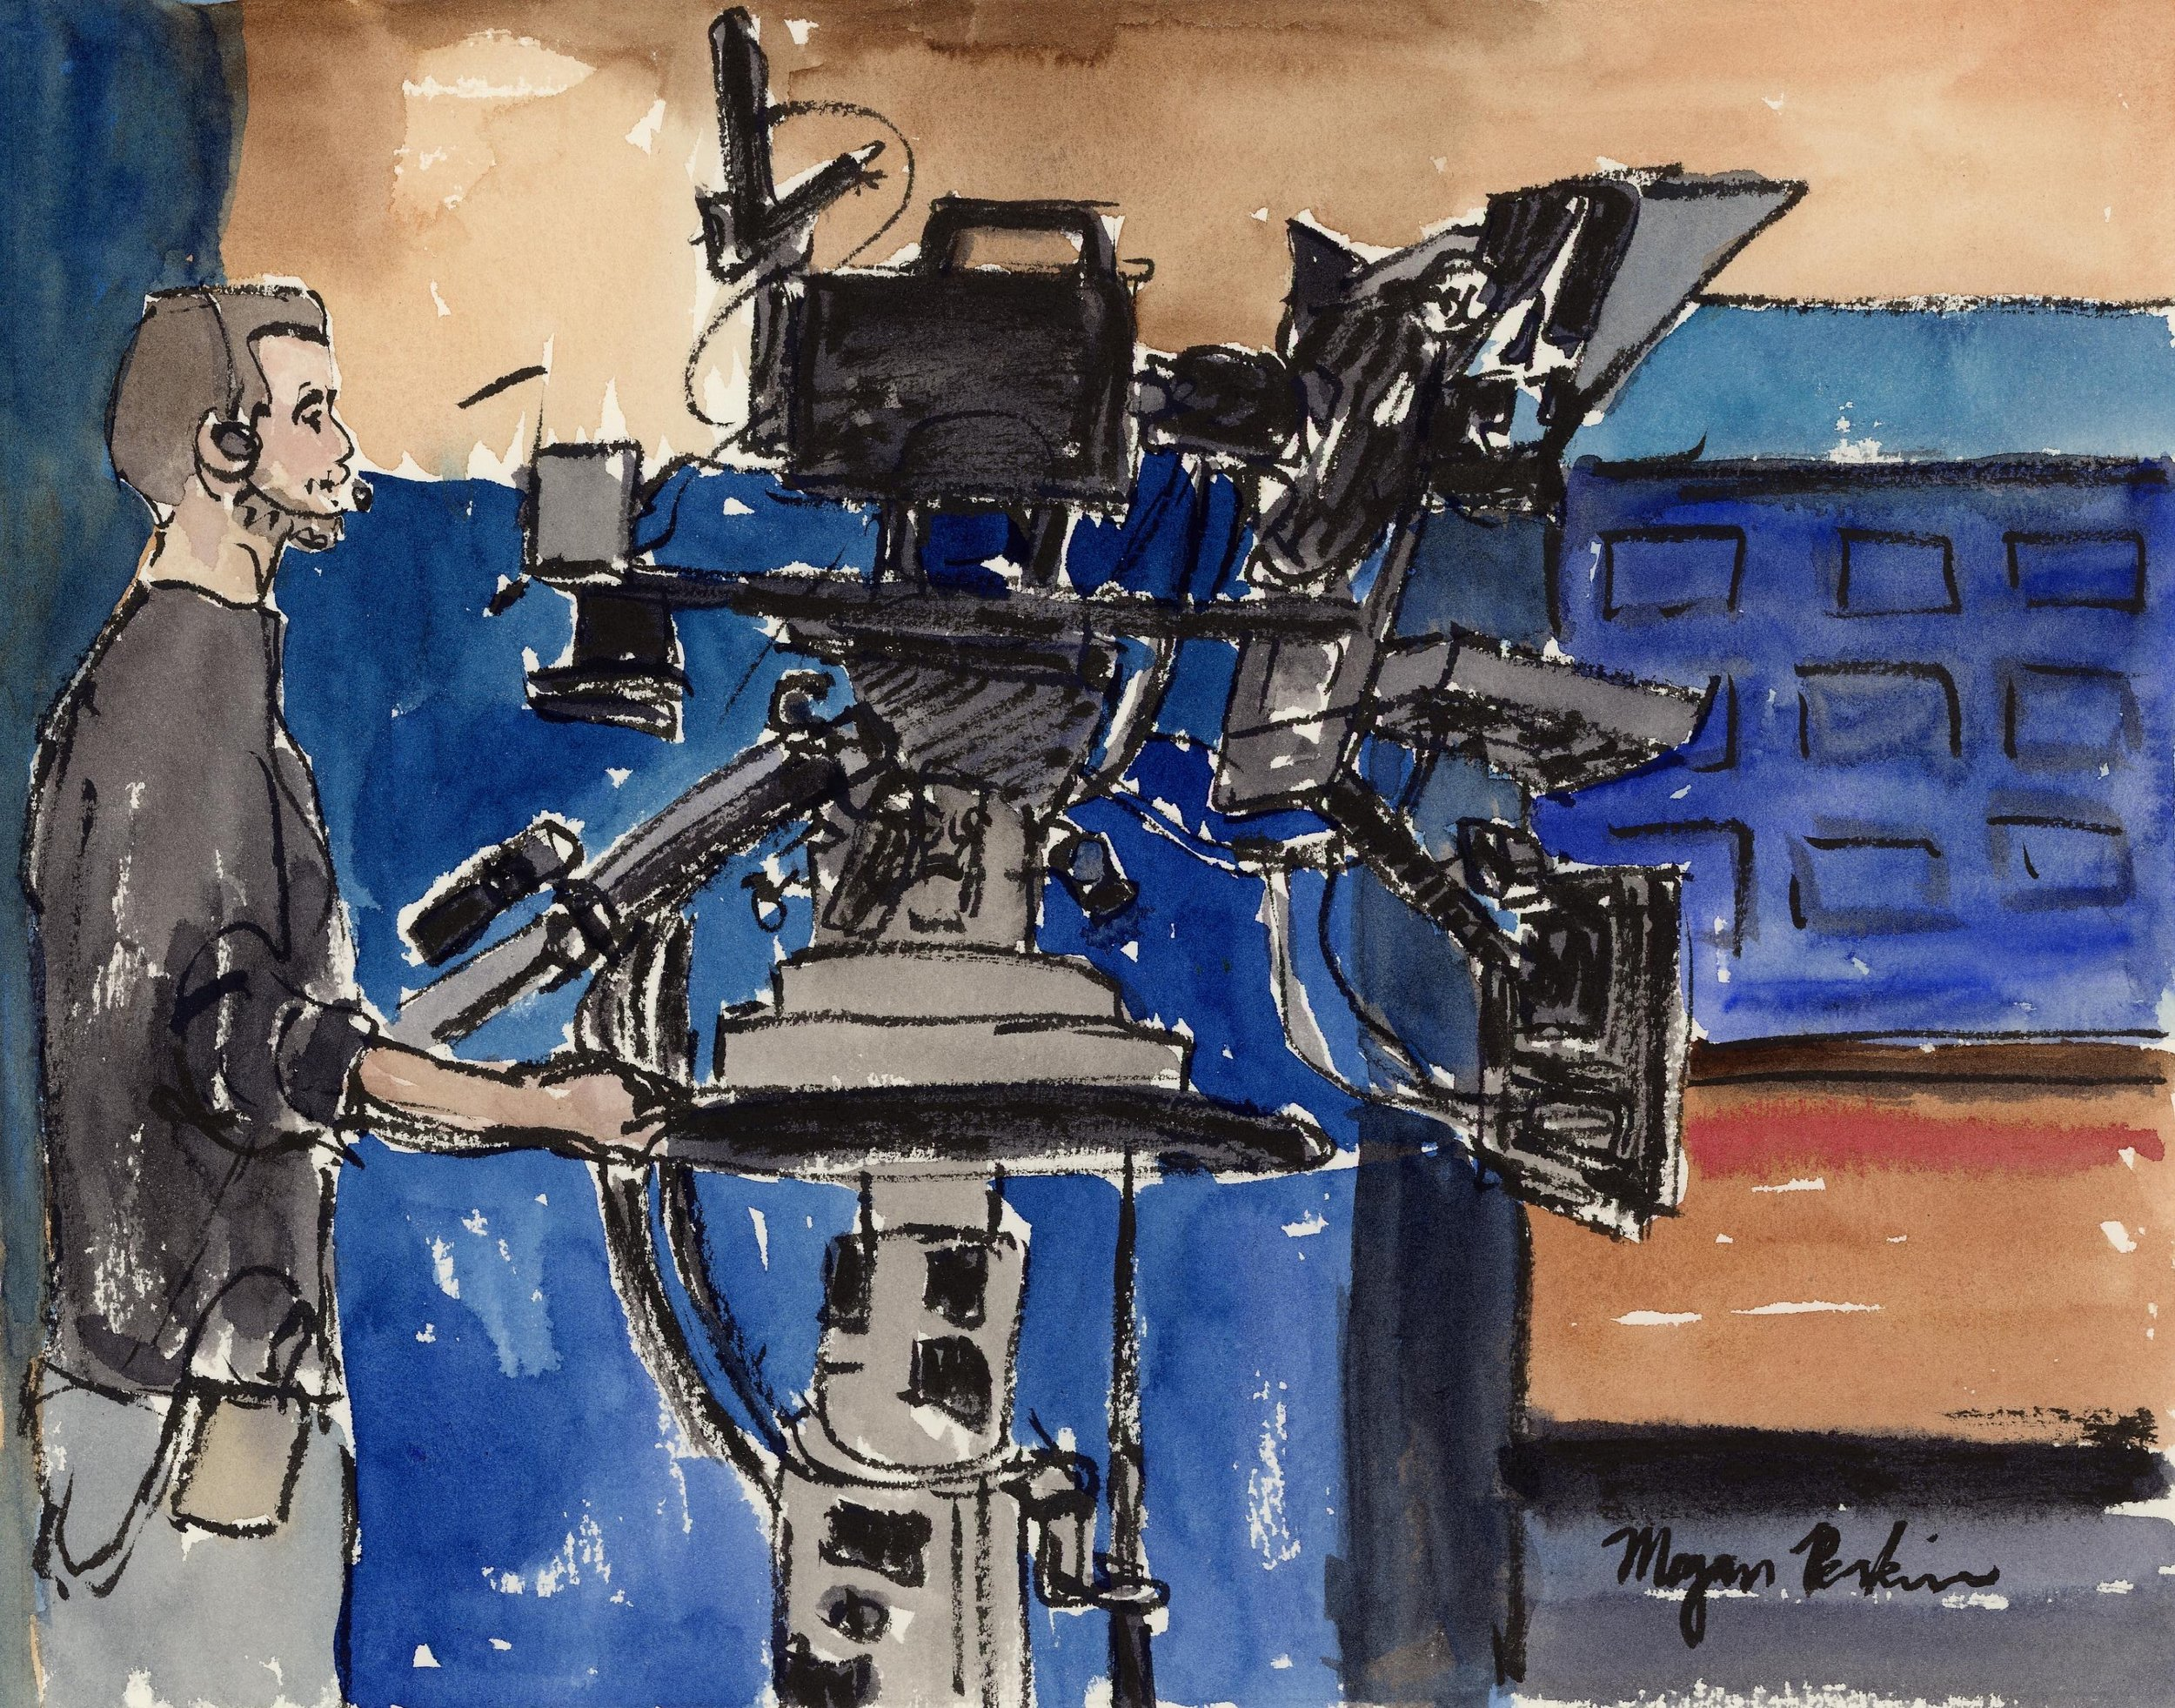 In April, I went on KXLY's morning show, getting up at 4 am to do so! I painted at the station in between segments and had a lot of fun, though I don't know how the news anchors are so cheery every morning (Coffee, lots of Coffee).